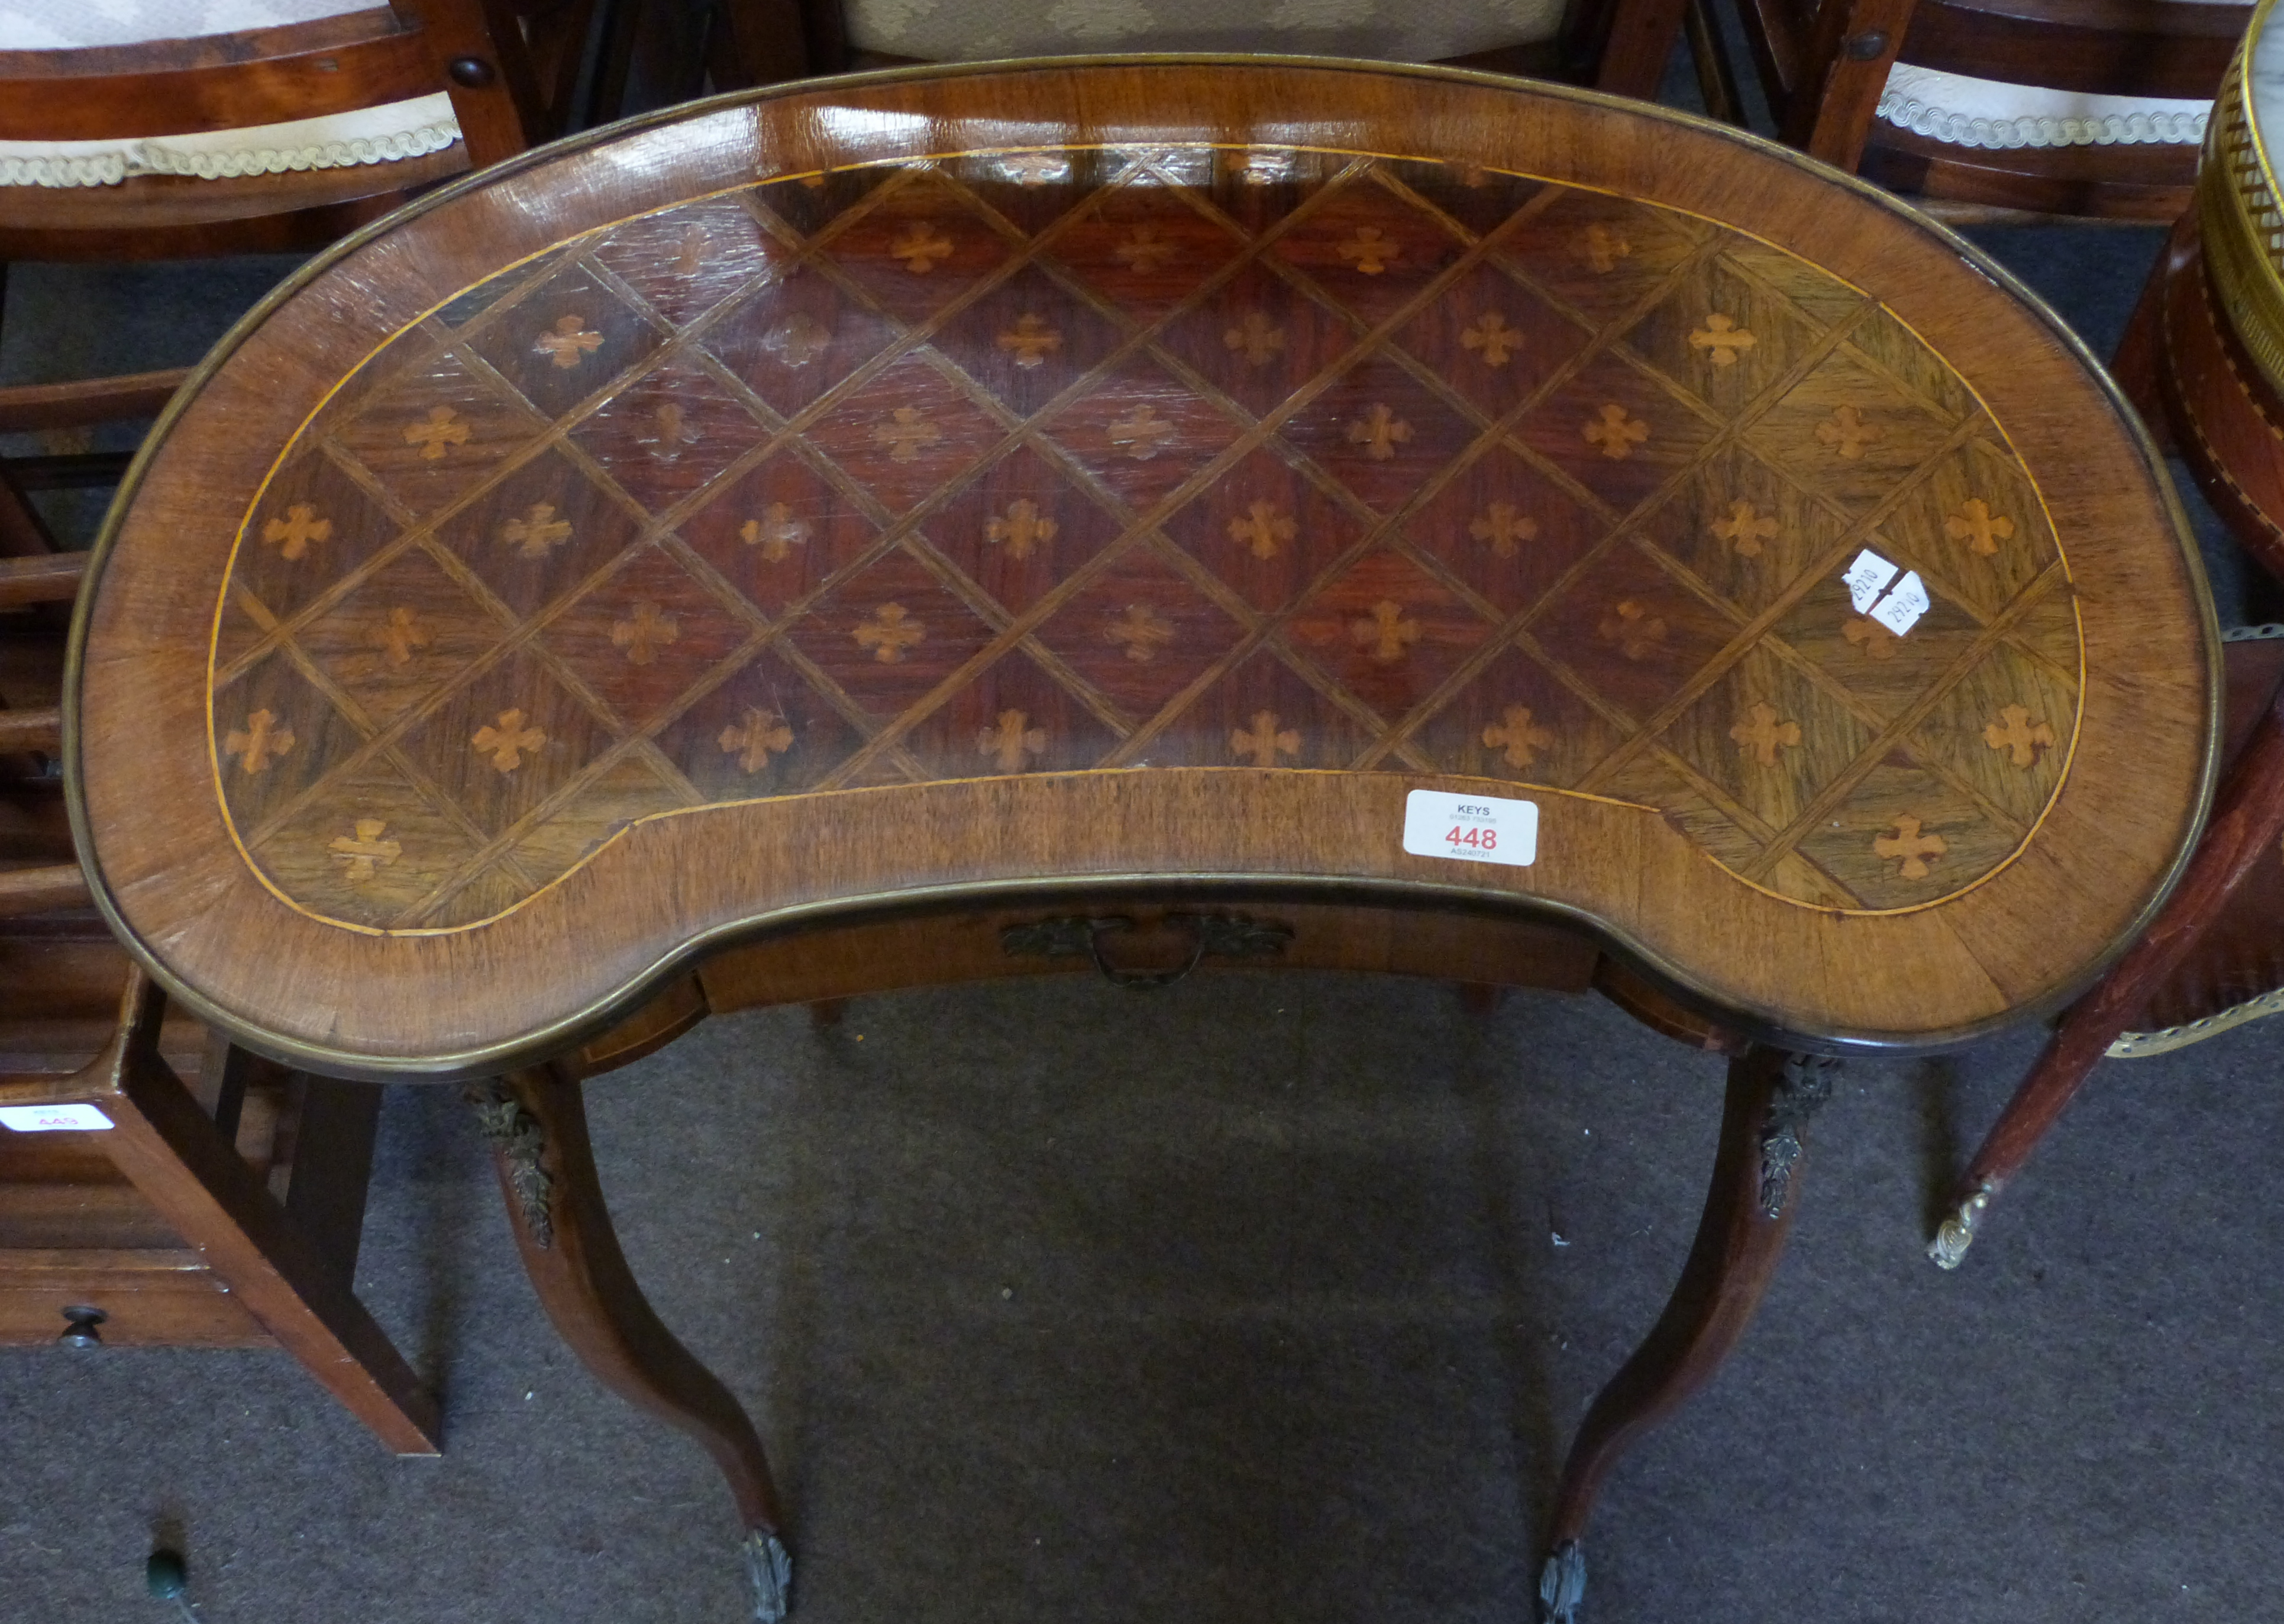 Small kidney shaped side table with drawer beneath and inlaid decoration, height approx 69cm - Image 3 of 3